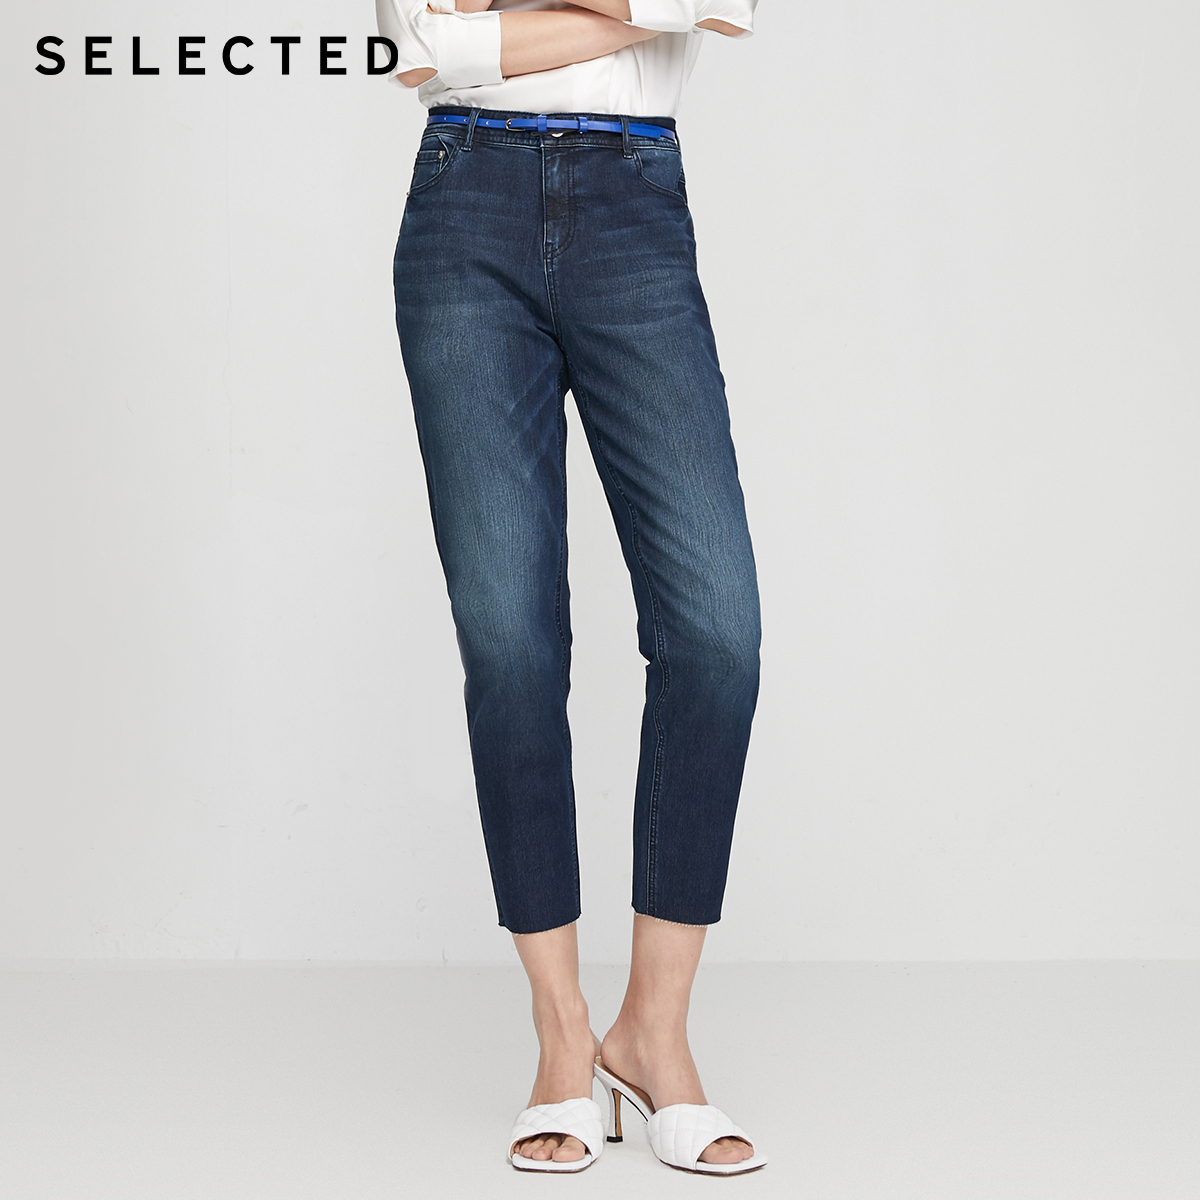 SELECTED Women's Cotton Denim Pants Mid-rise Tapered Crop Jeans R|420232523